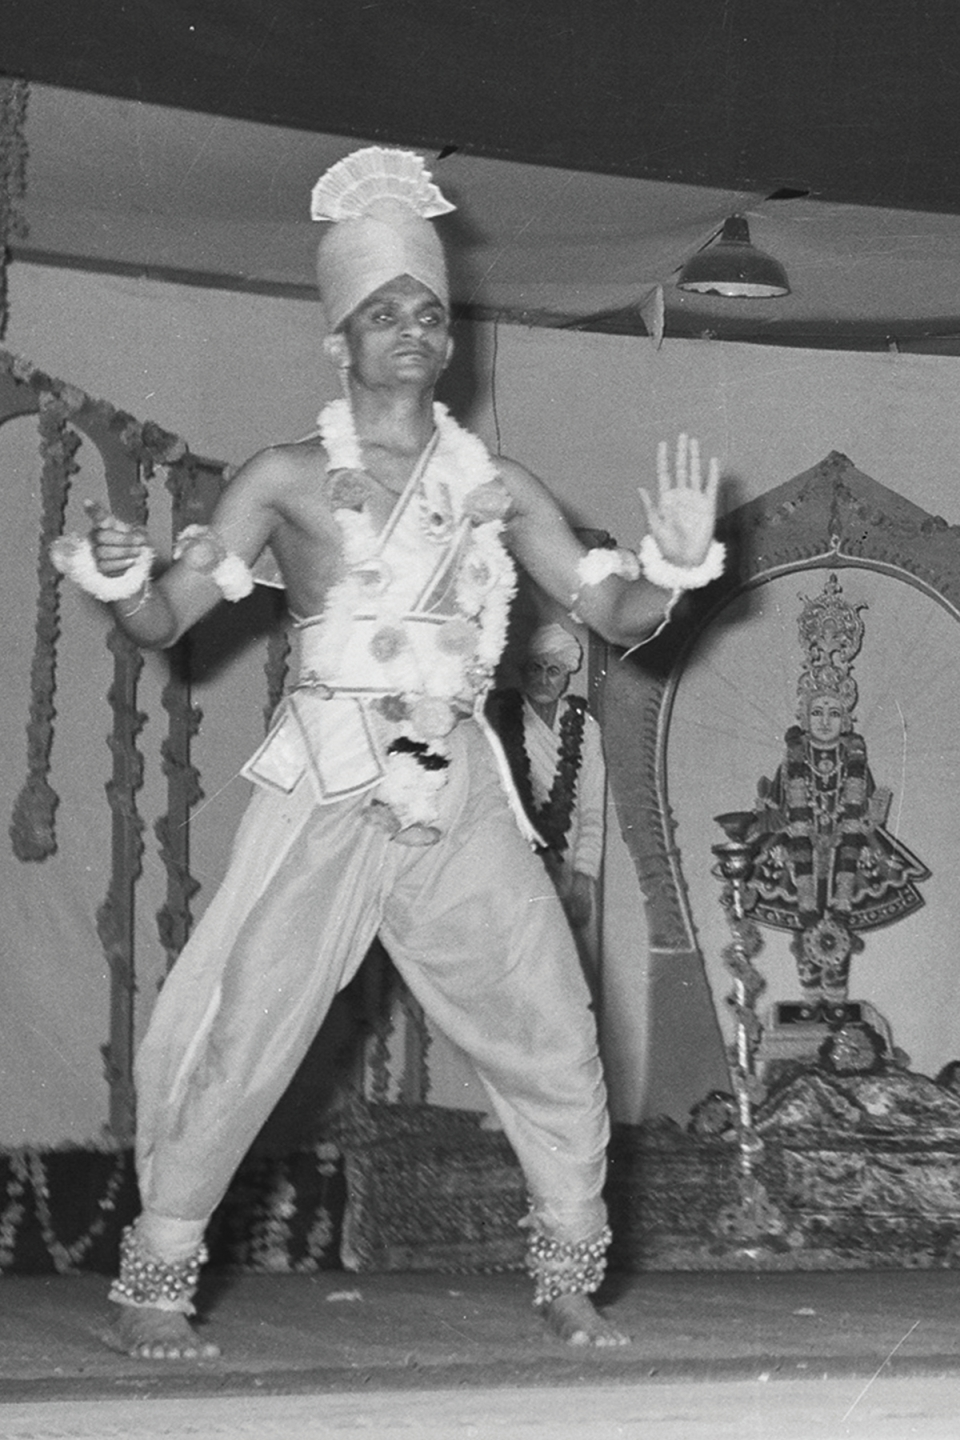 Acharya Swamishree Maharaj performed devotional dances; the most famous being 'Chho Prabhu Shree Ghanshyam Jaykaari' (Oh Lord Shree Ghanshyam, You are Immensely Glorious). In 1970, during Swamibapa's international tour, He performed this devotional dance at various places in the UK, including London's Trafalgar Square.